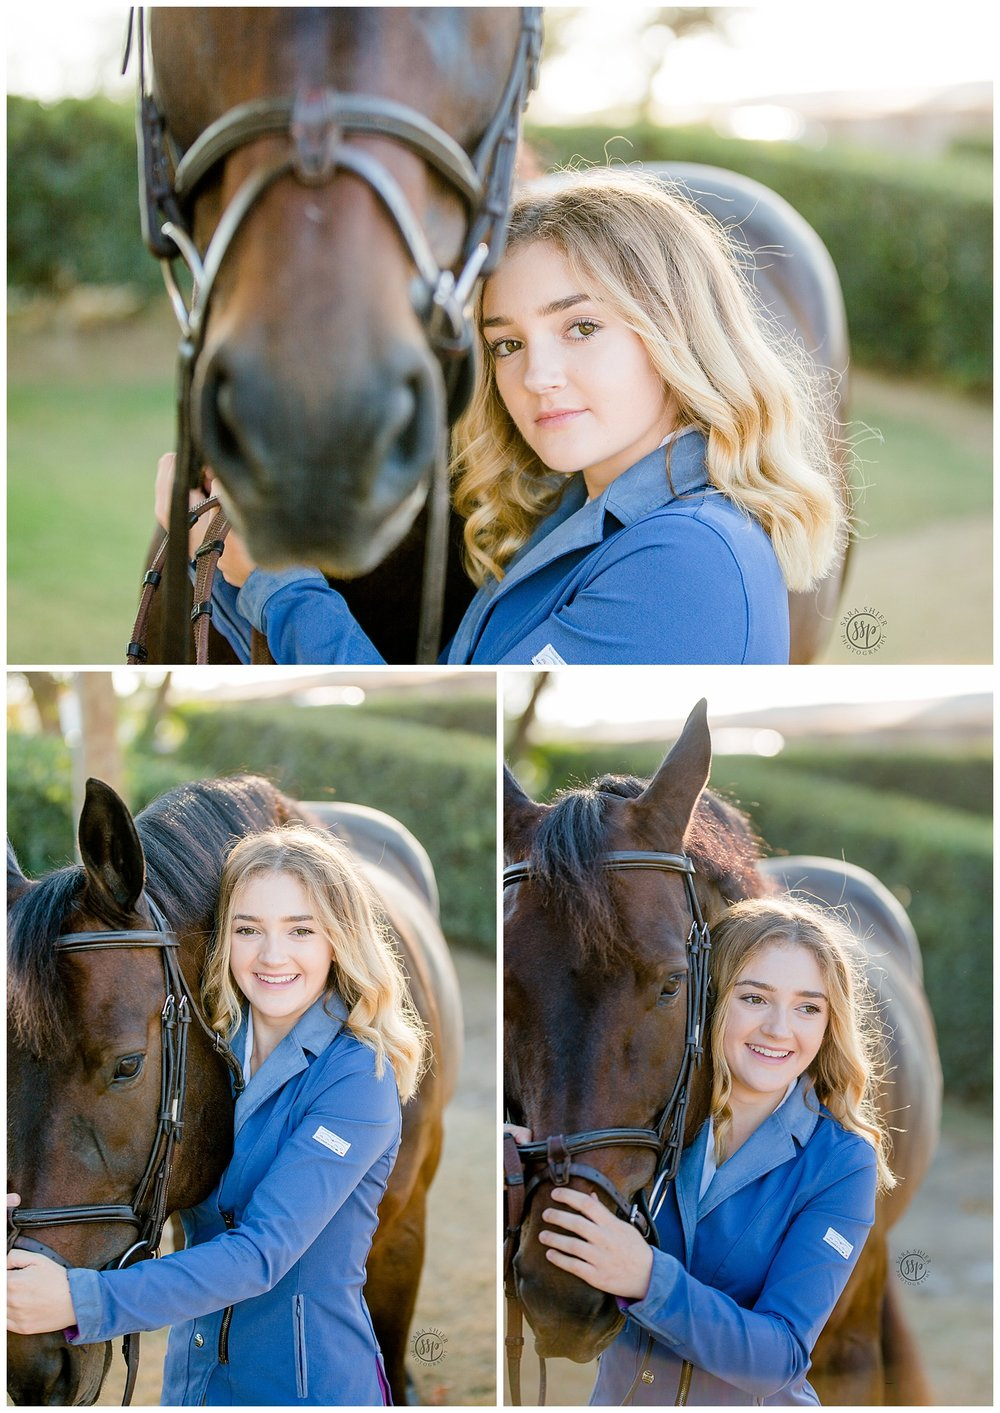 Black Background Horse Rider Equine Photographer Southern California Sara Shier Photography SoCal Equestrian Cowgirl_0079.jpg